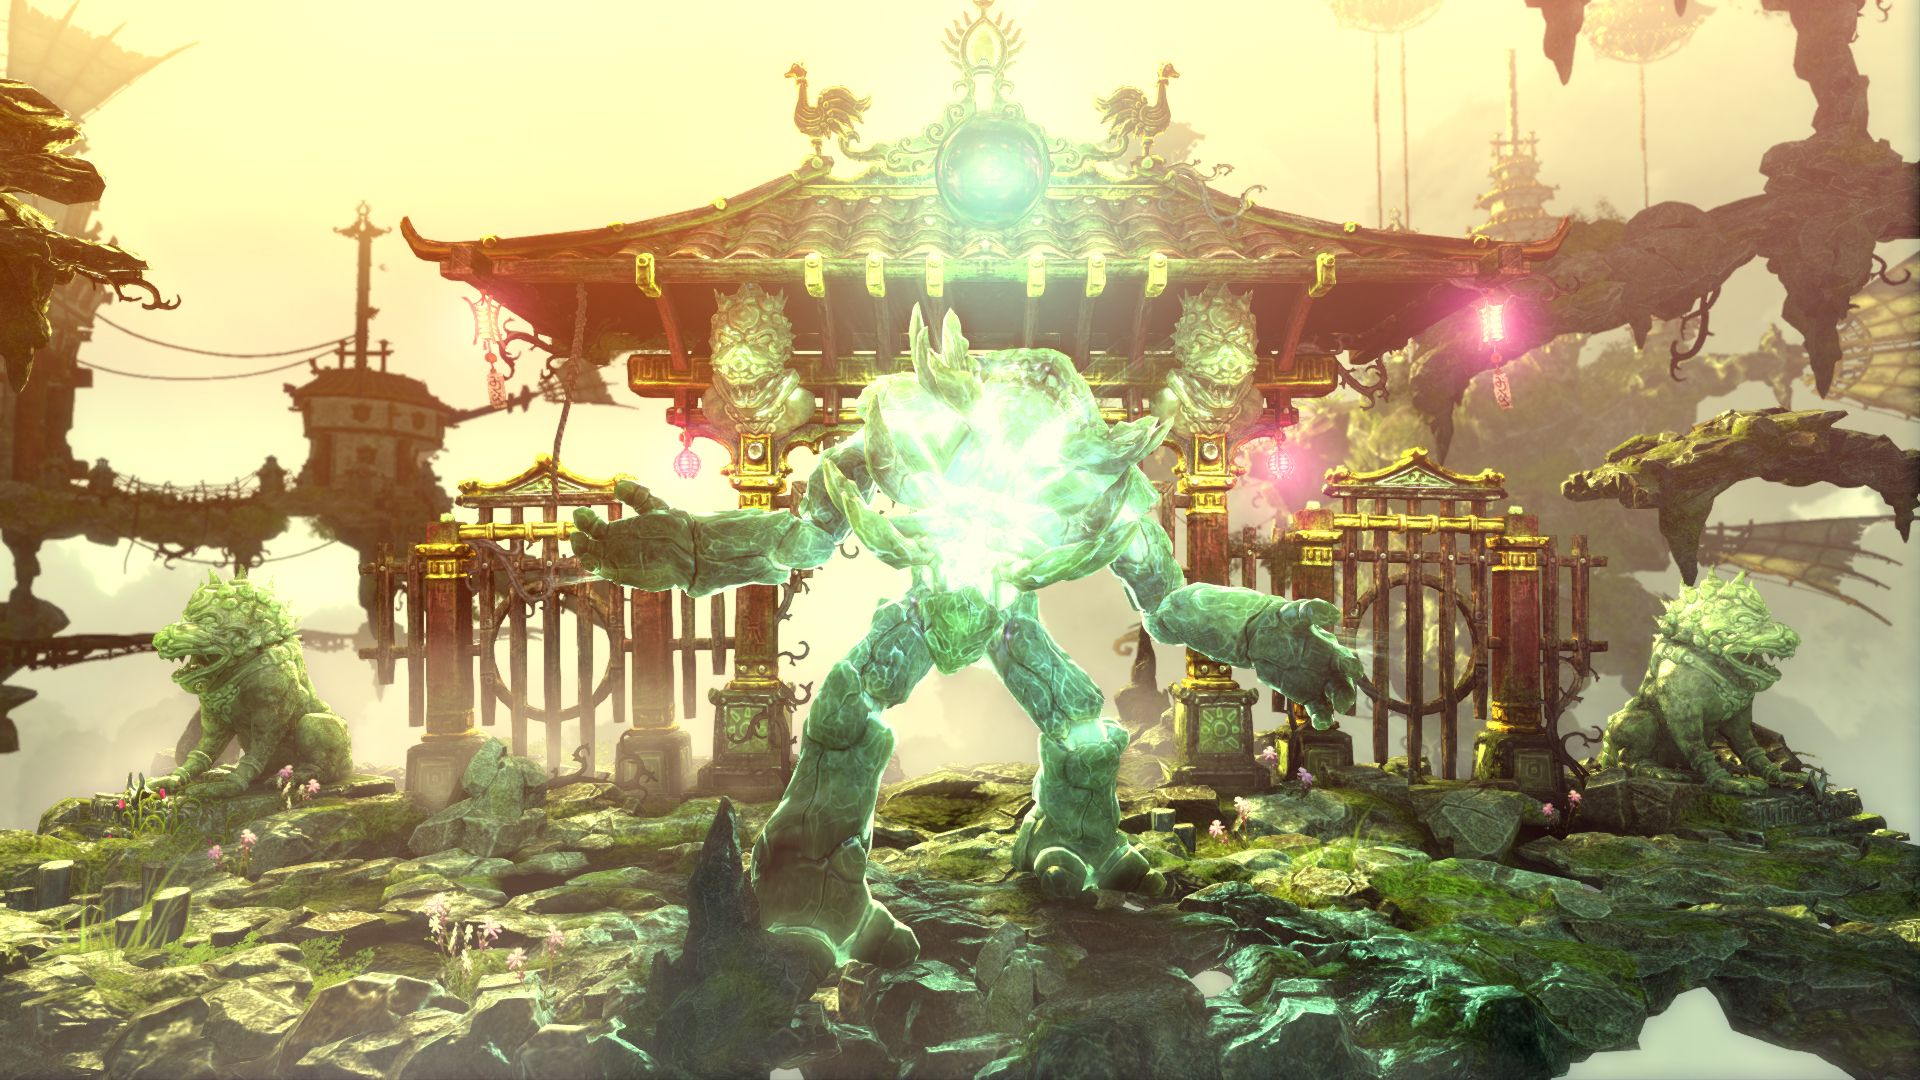 Trine_2_gm_golem_shot_1_1080p